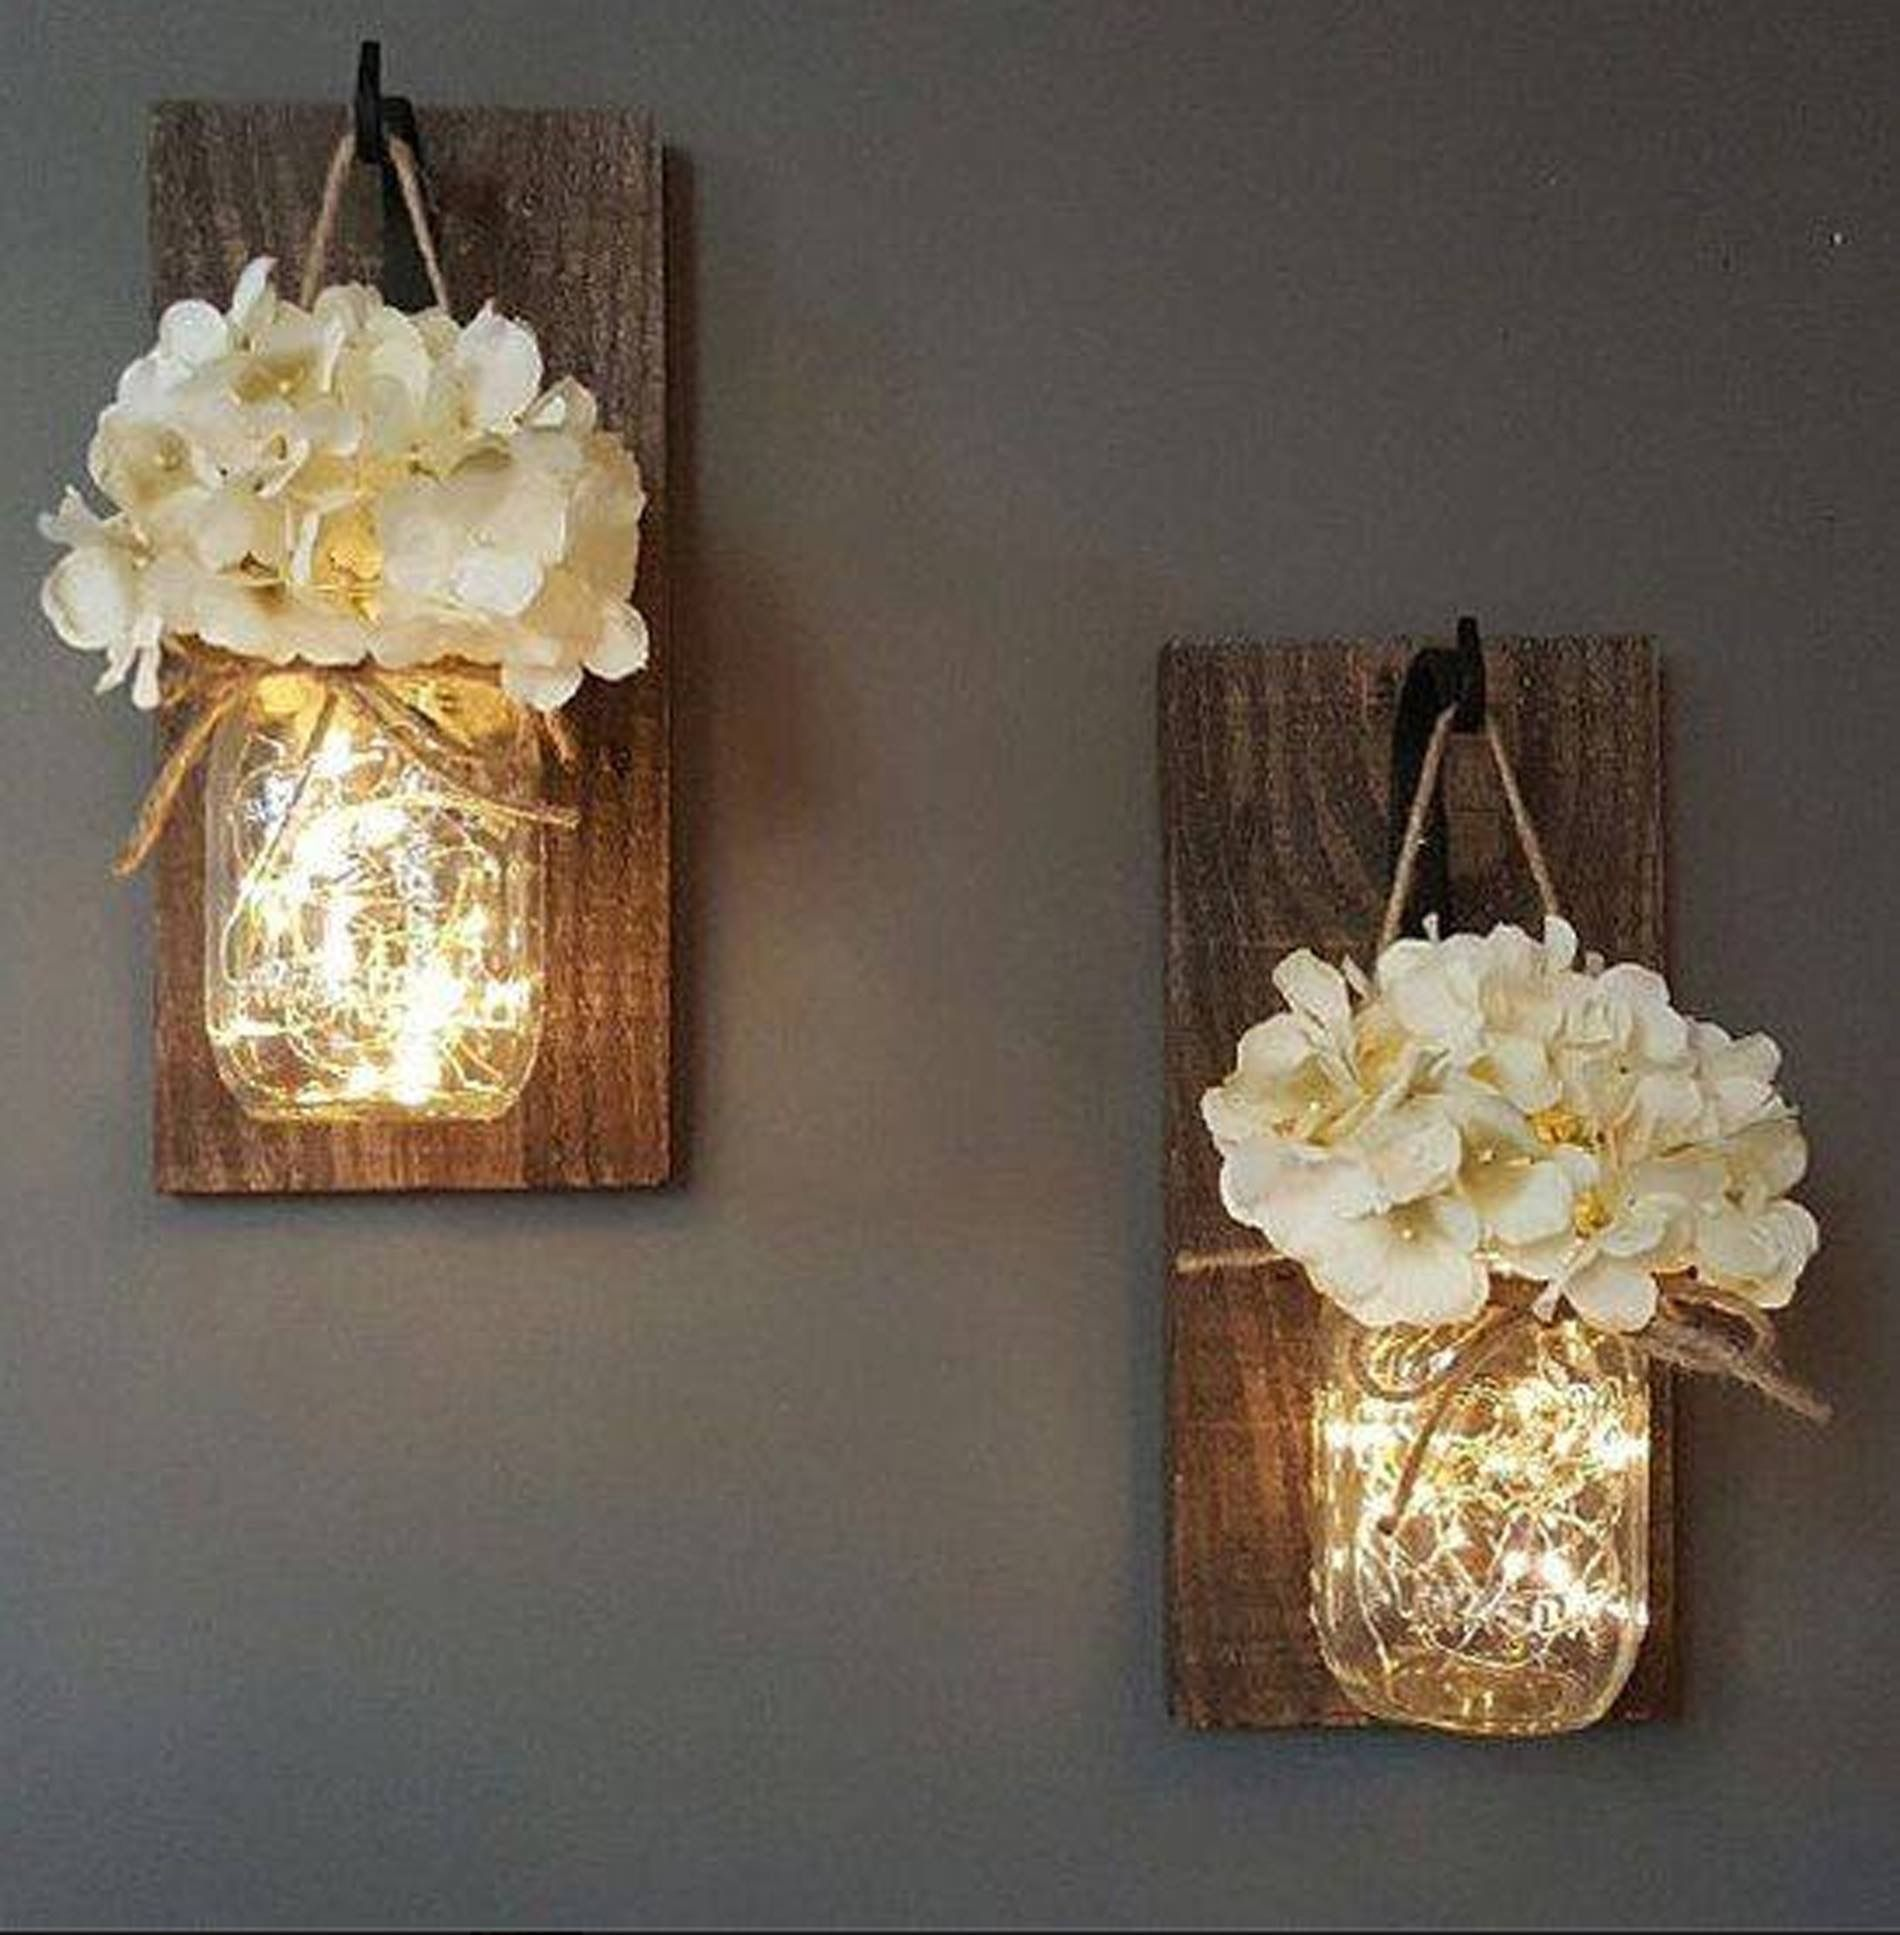 pictures to hang in master bathroom%0A awesome Rustic Home Decor  Home  u     Living  Set of   Hanging Mason Jar  Sconces wit   Home Decor